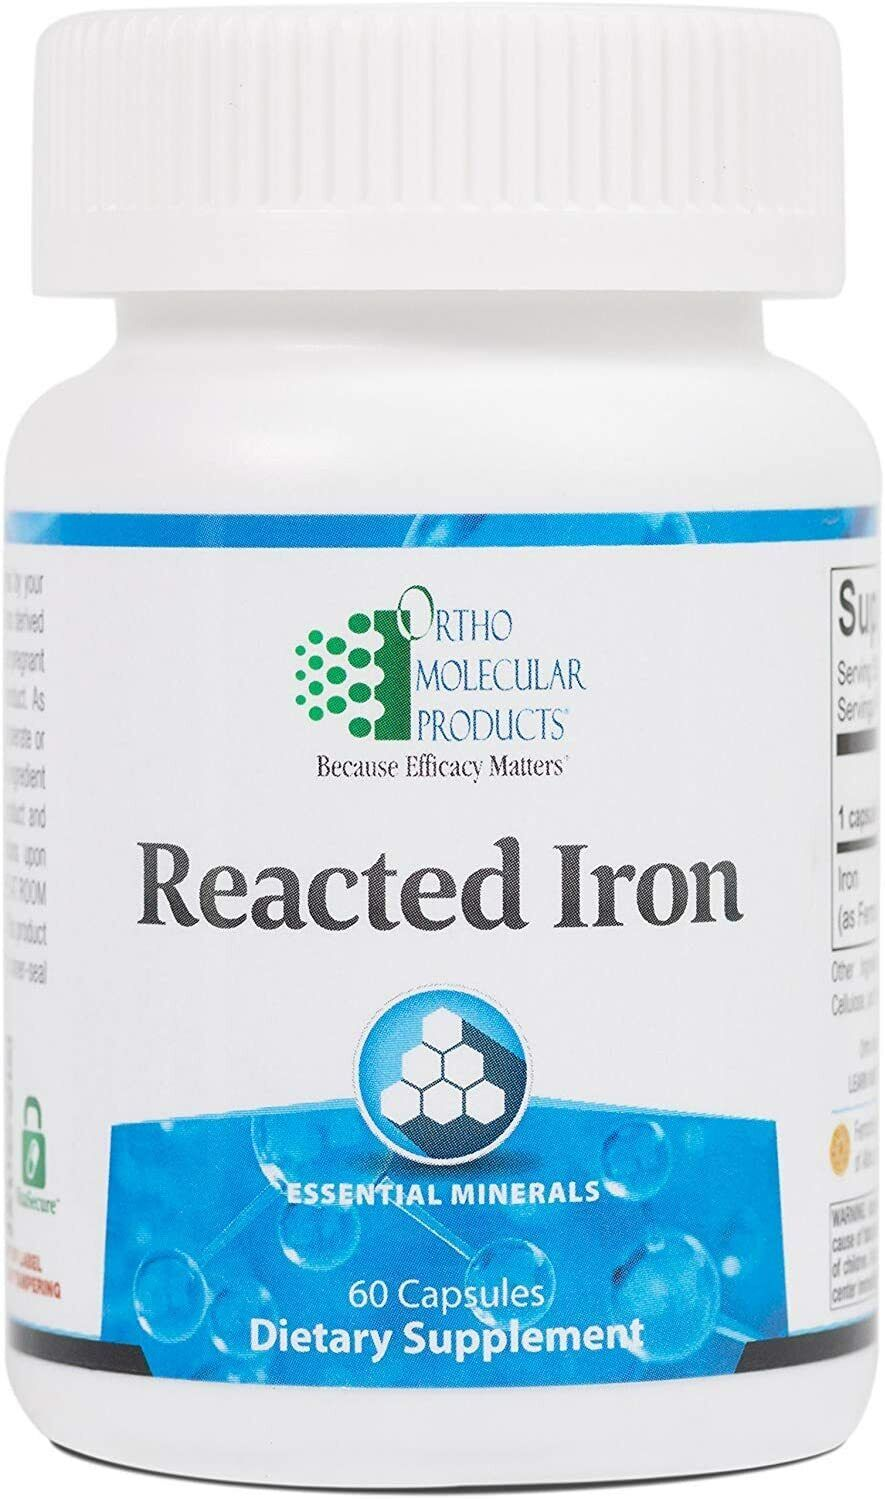 Ortho Molecular Reacted Iron 60 Capsules